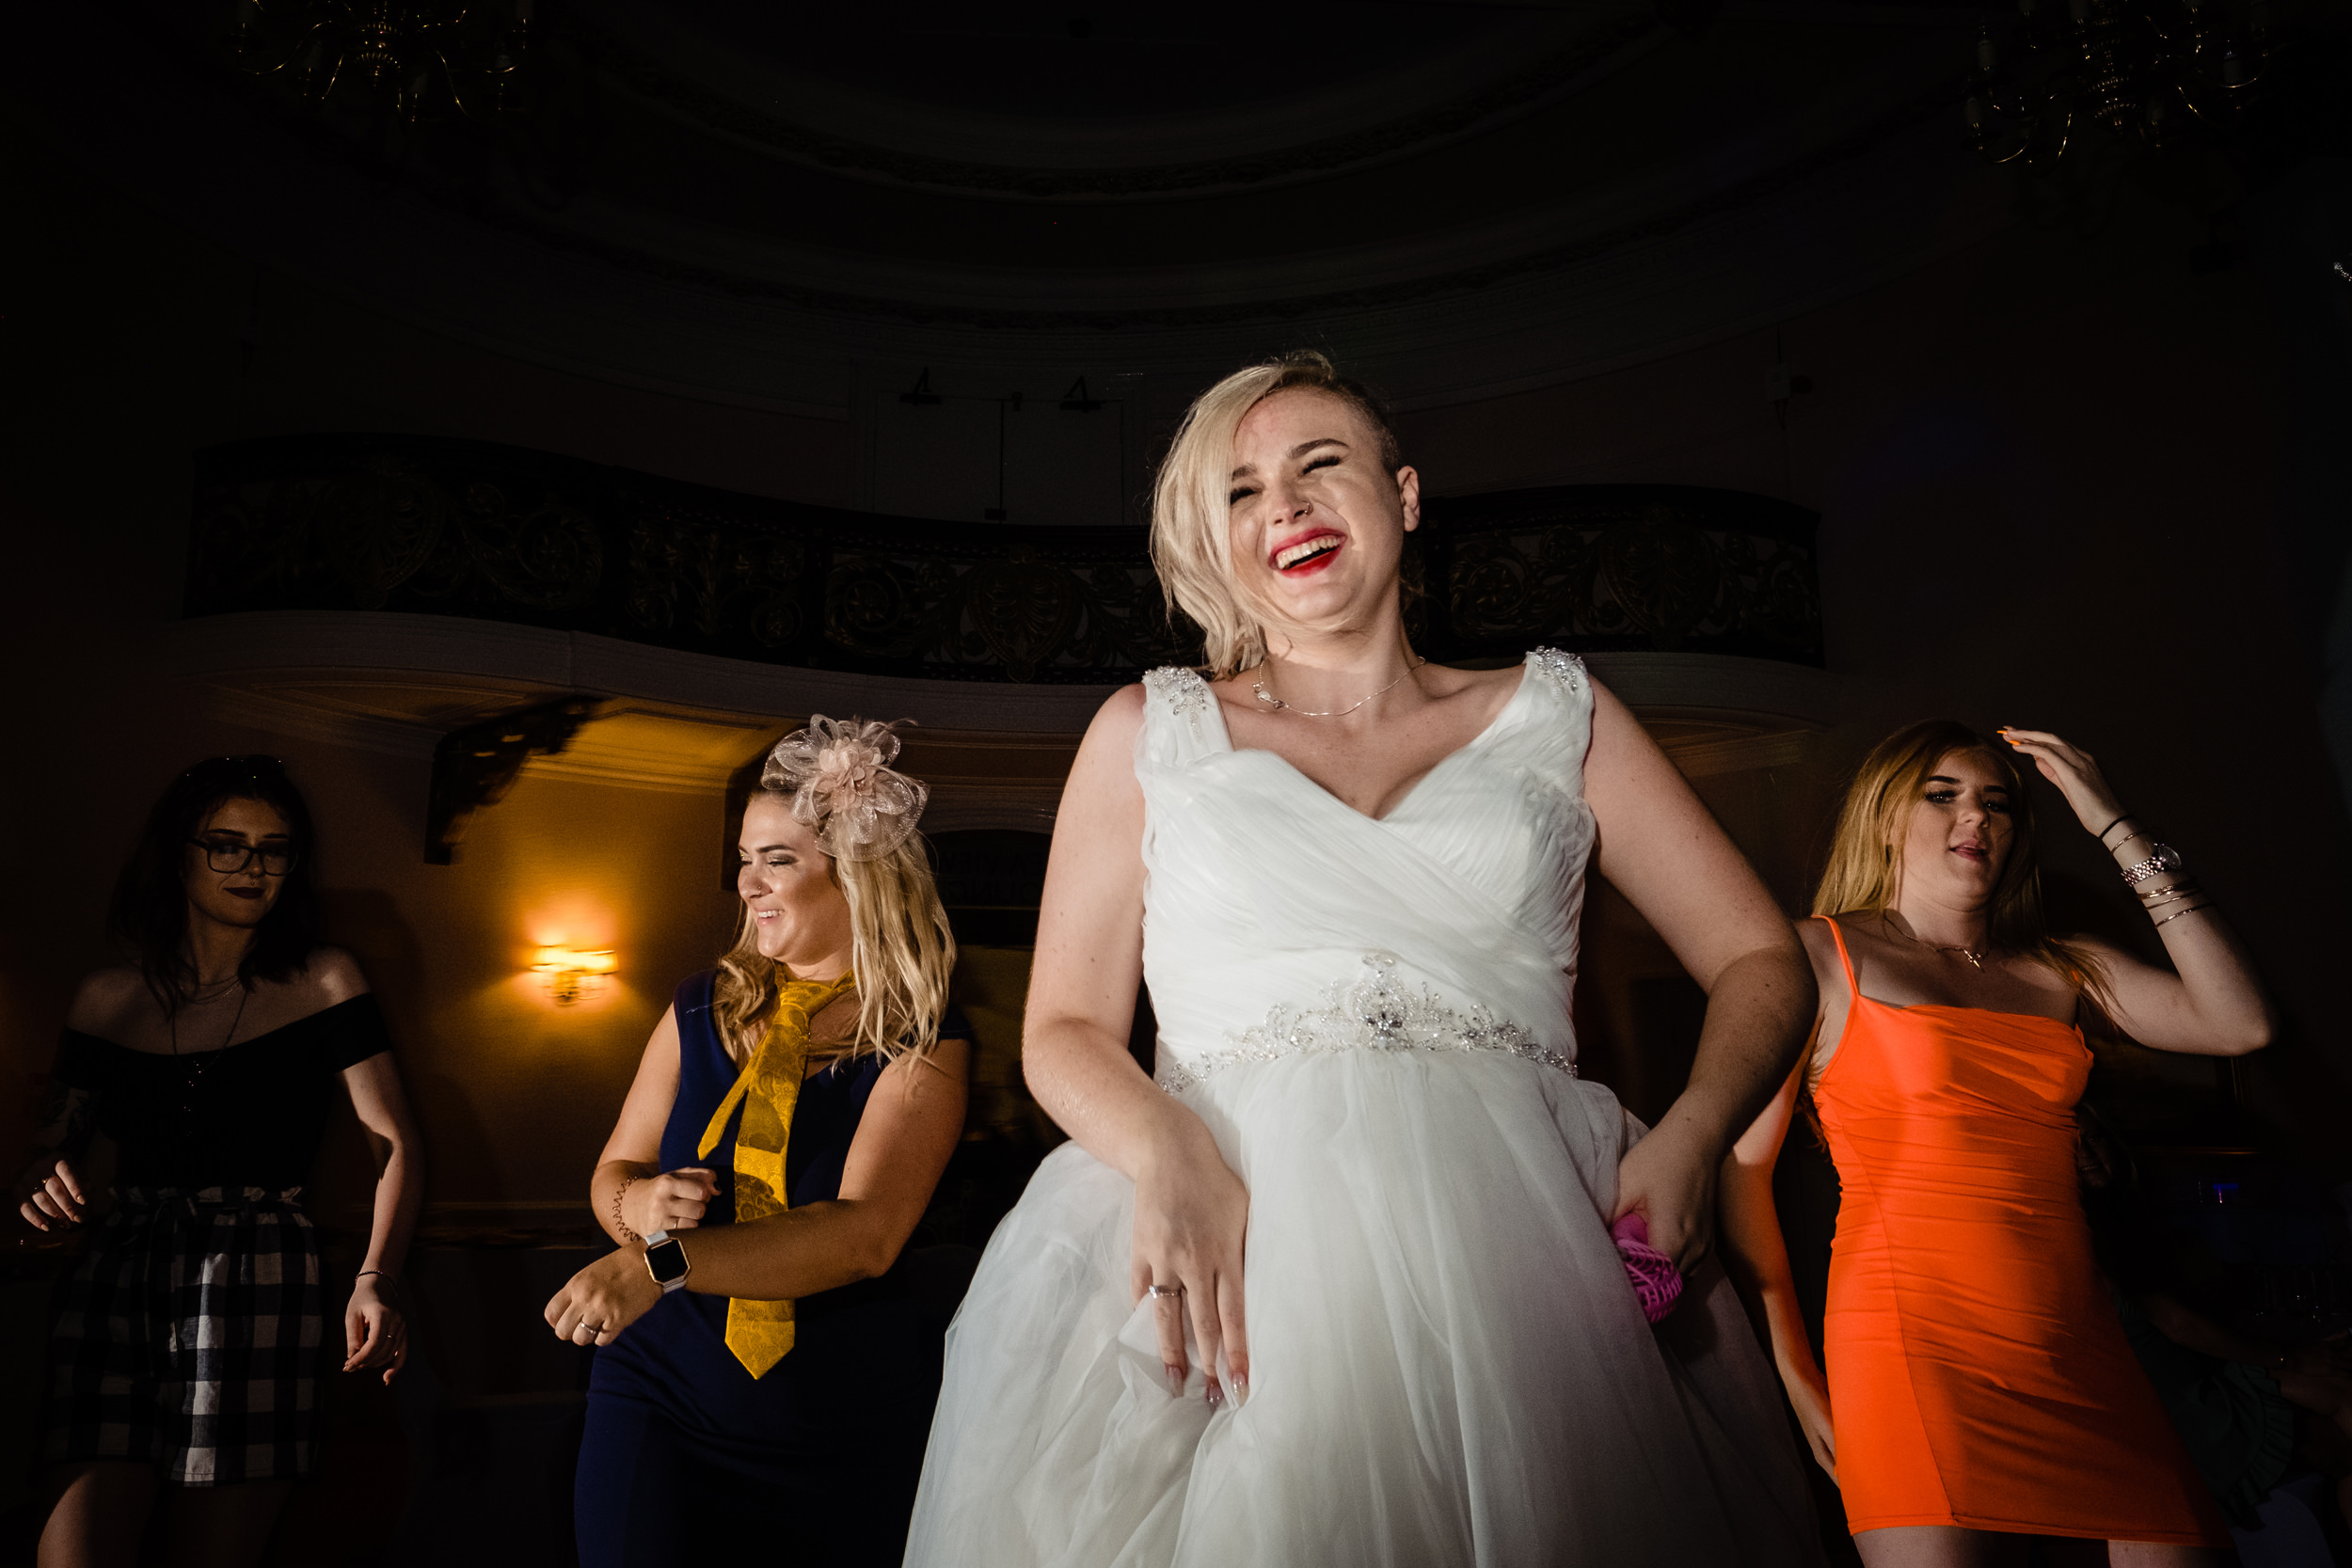 bride dancing with friends. grand hotel scarborough wedding photography by emma and rich.